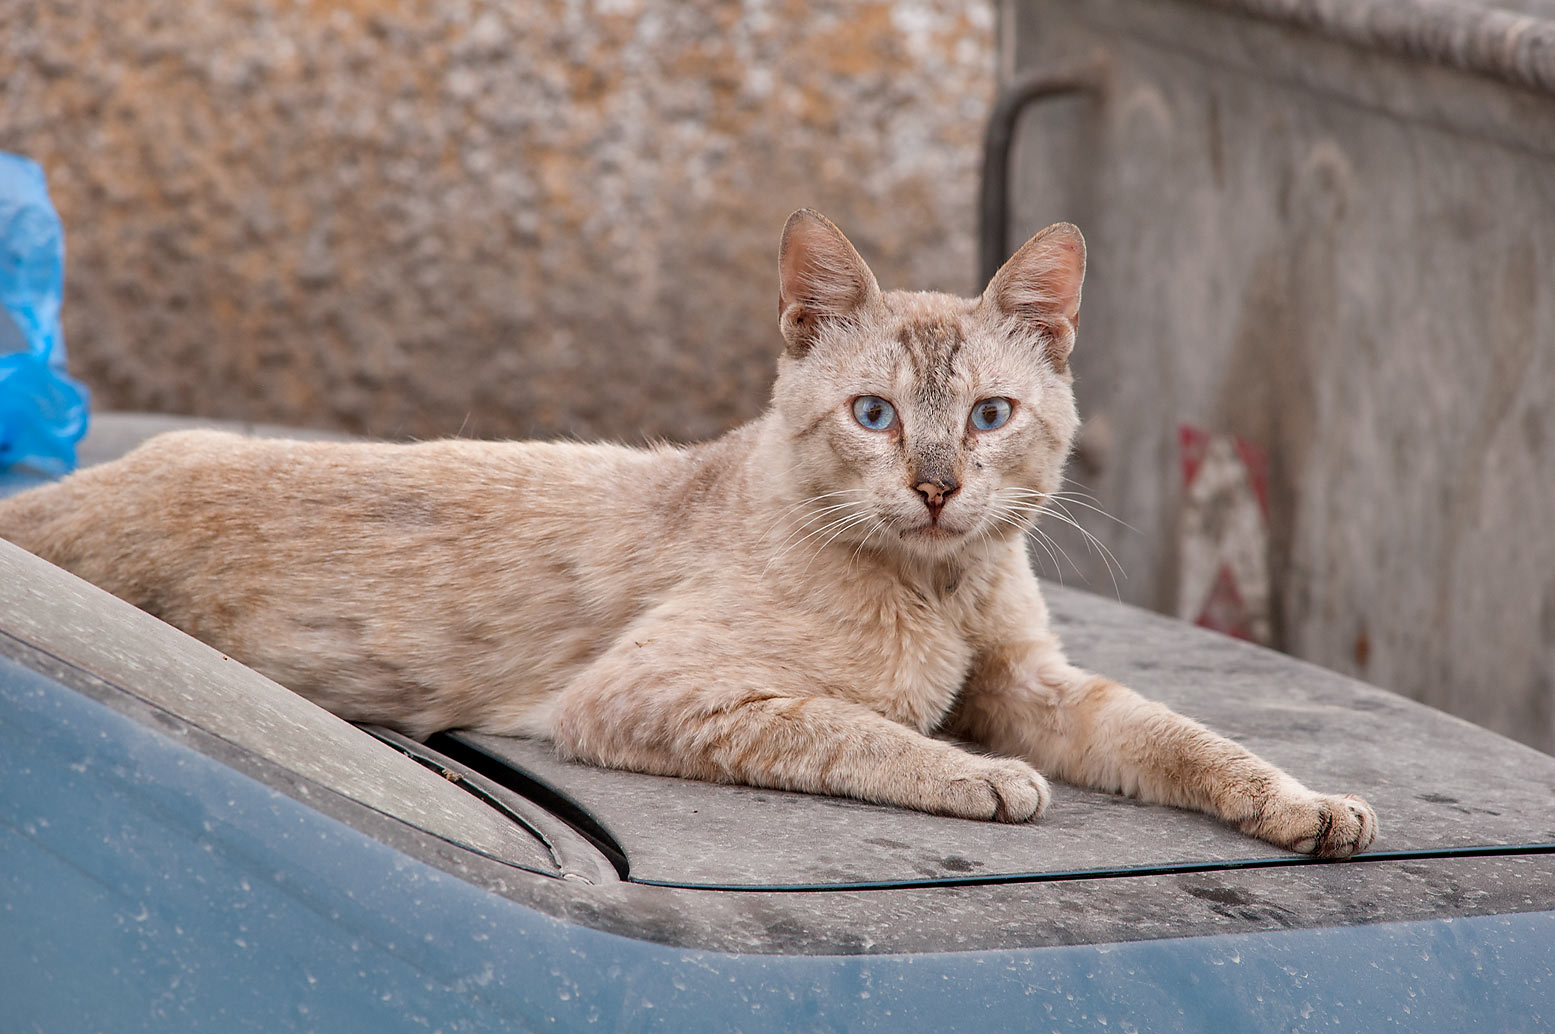 Dusty cat resting on a car near Umm Wishad St. in Musheirib area. Doha, Qatar